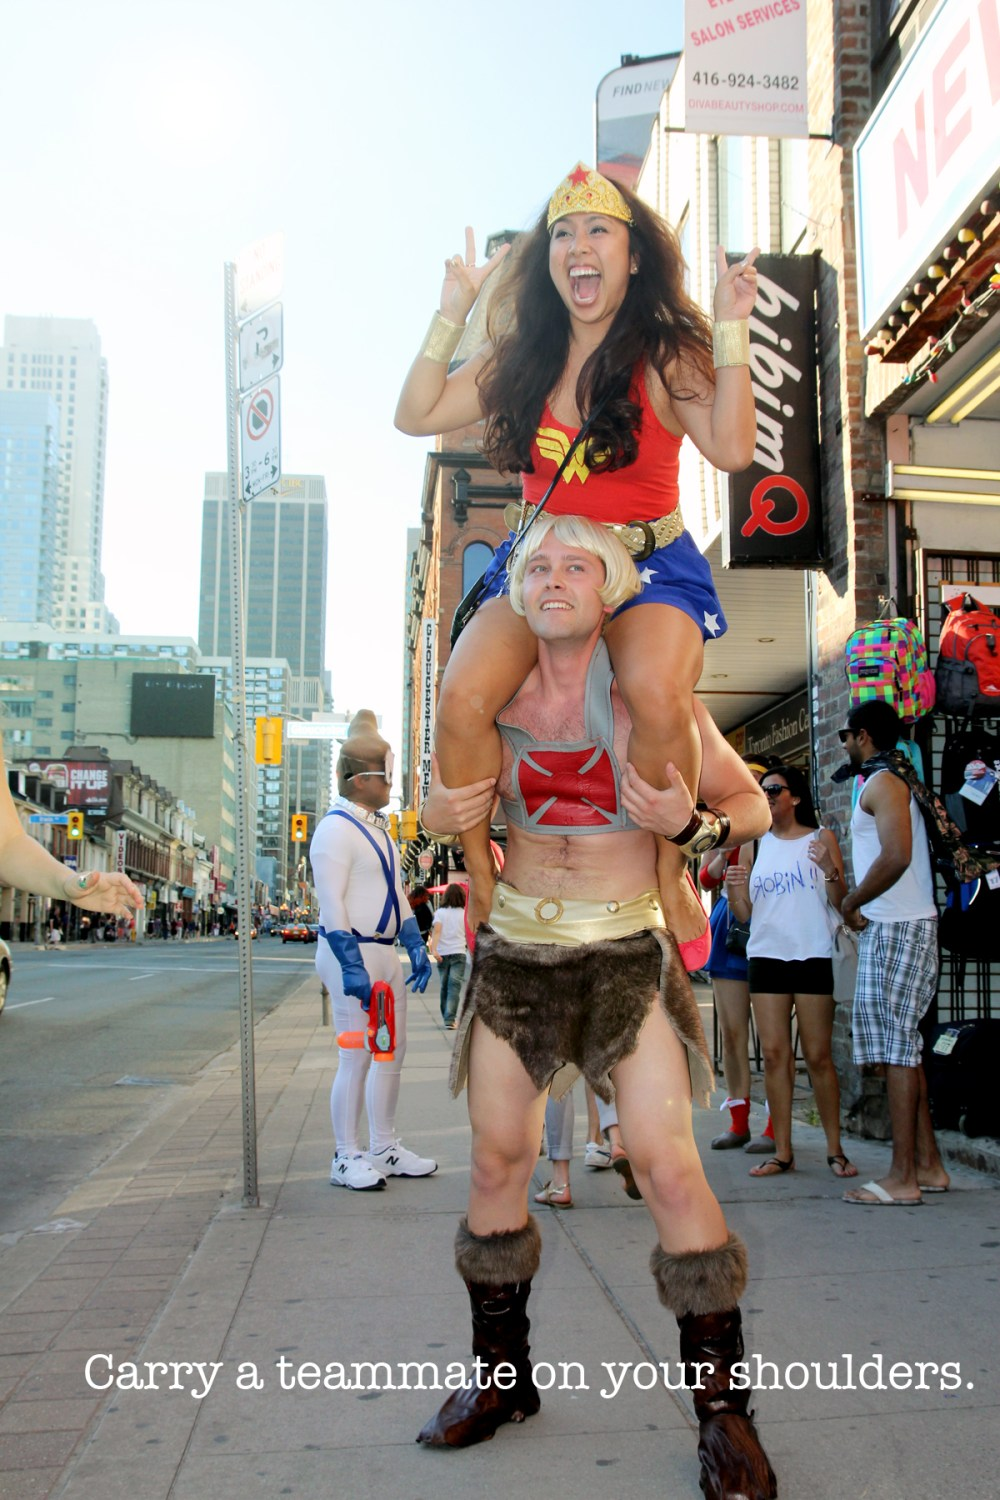 he man and wonder woman